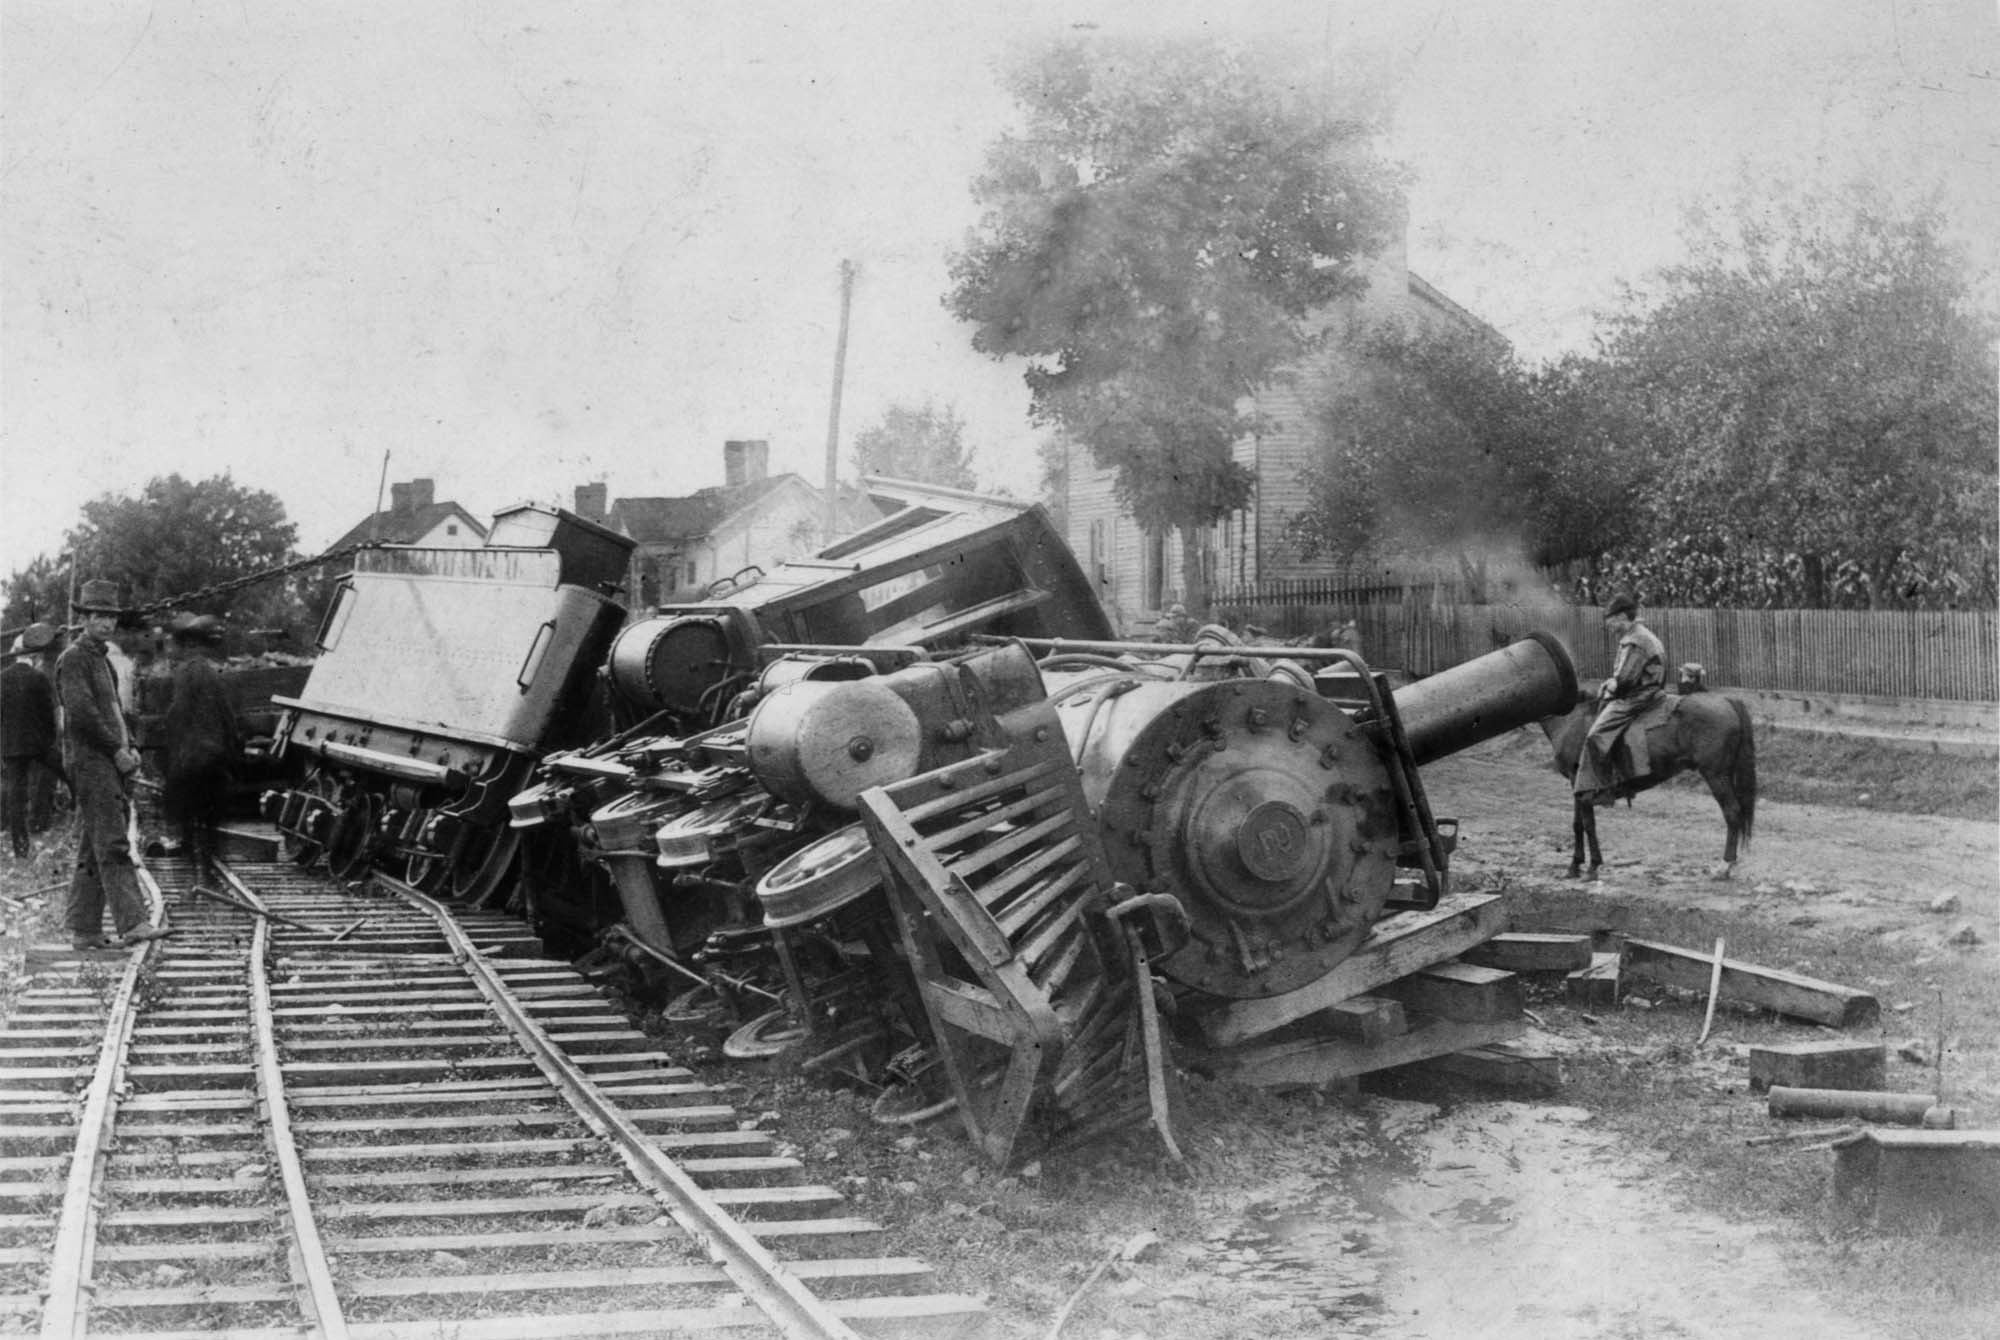 The kind of train wreck that may have ended William George Hughes life.